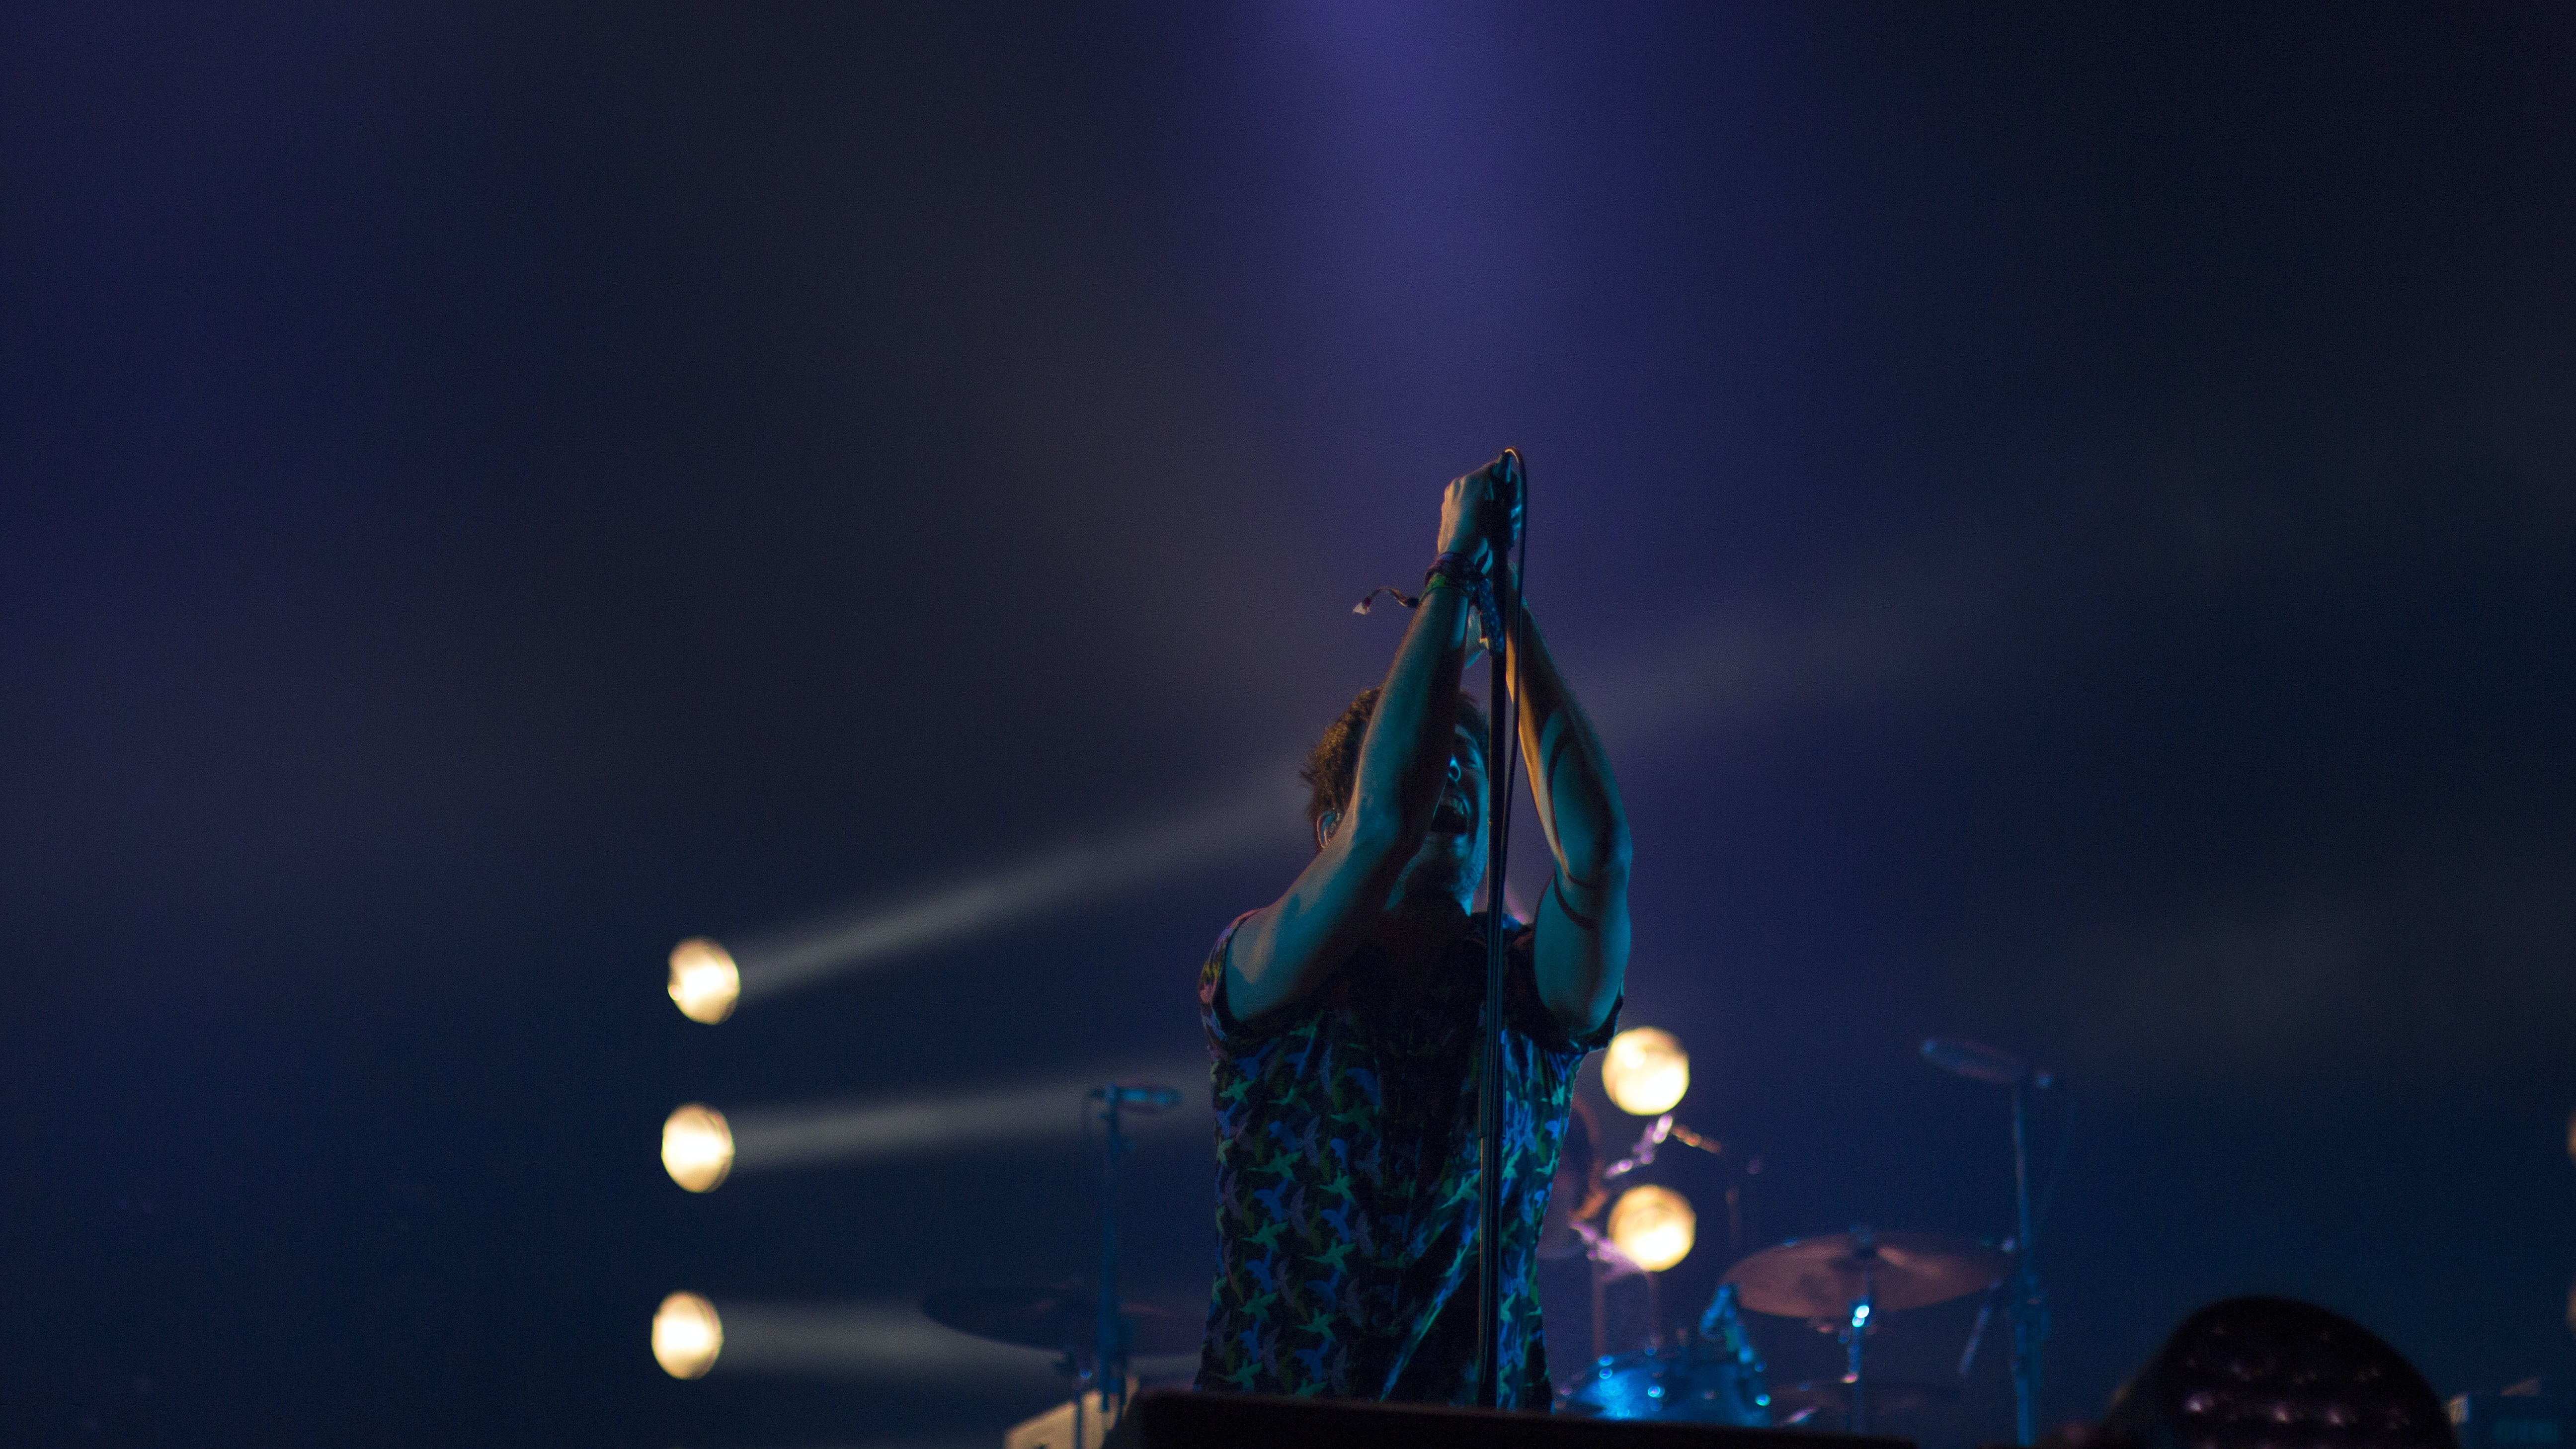 A vocalist singing into a microphone on a stand pointed downwards